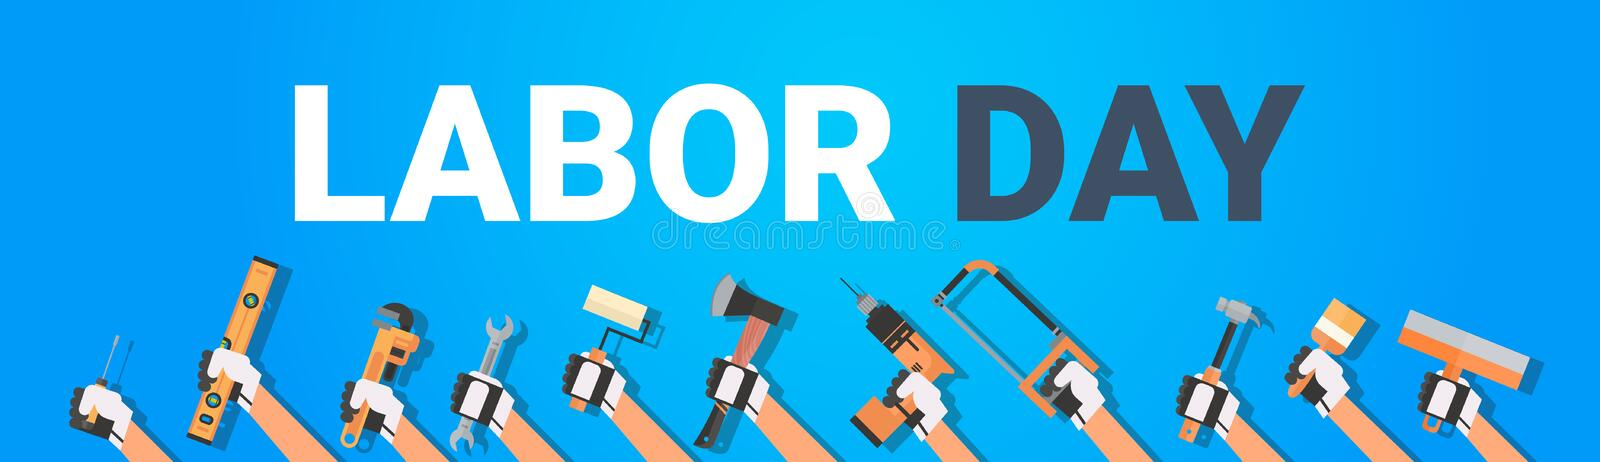 Labor Day Poster With Hands Holding Different Instruments On Background 1 May Holiday Horizontal Banner stock illustration